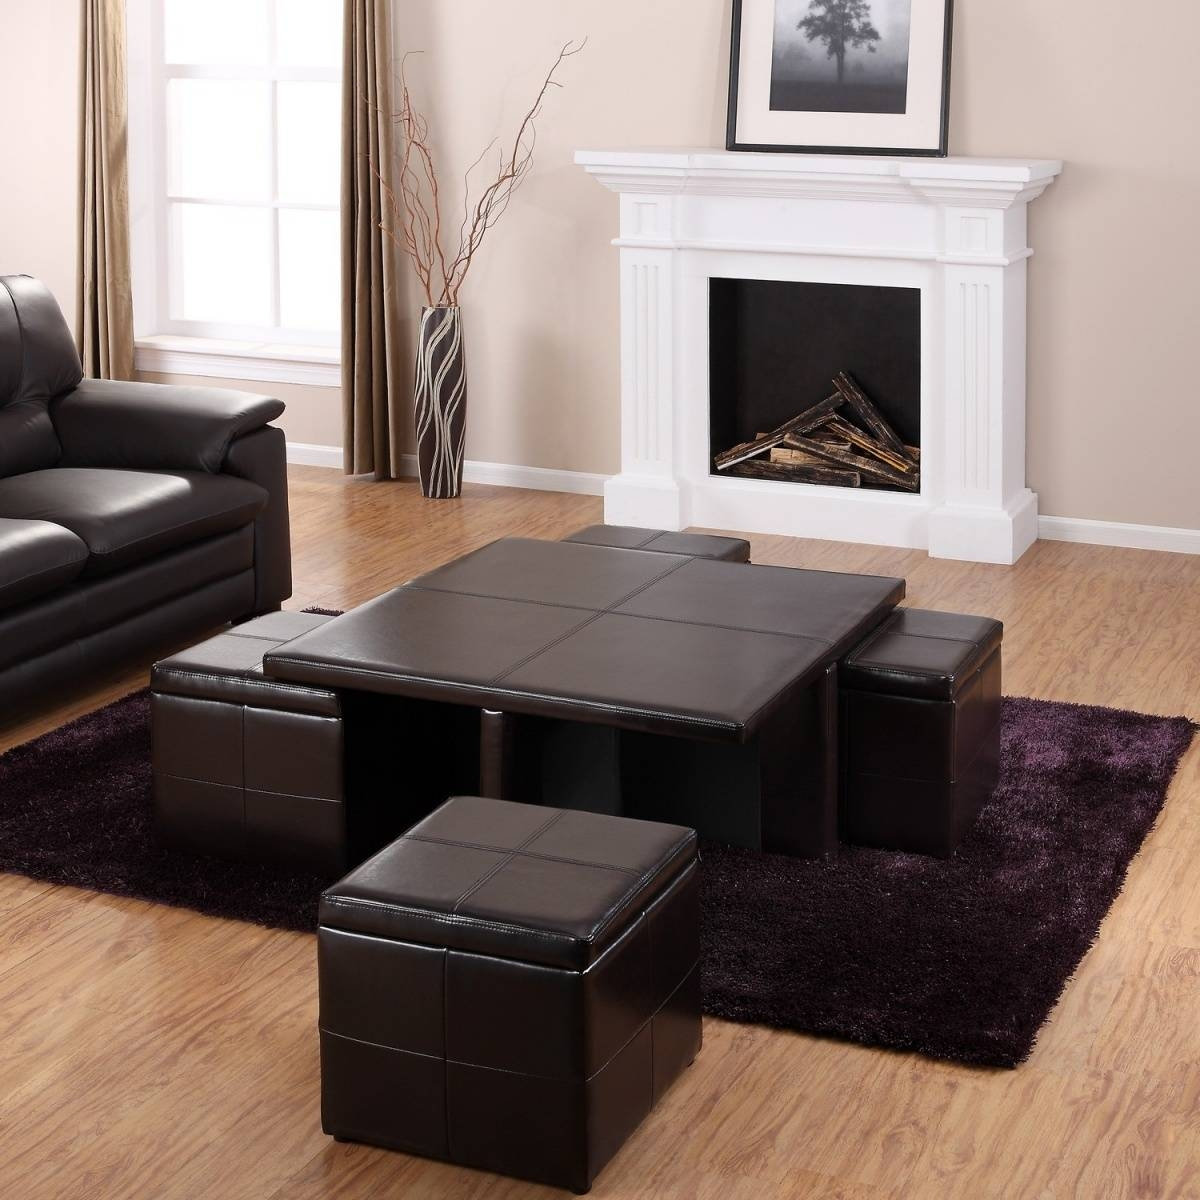 Coffee Tables With Chairs Underneath regarding Coffee Table With Chairs (Image 18 of 30)